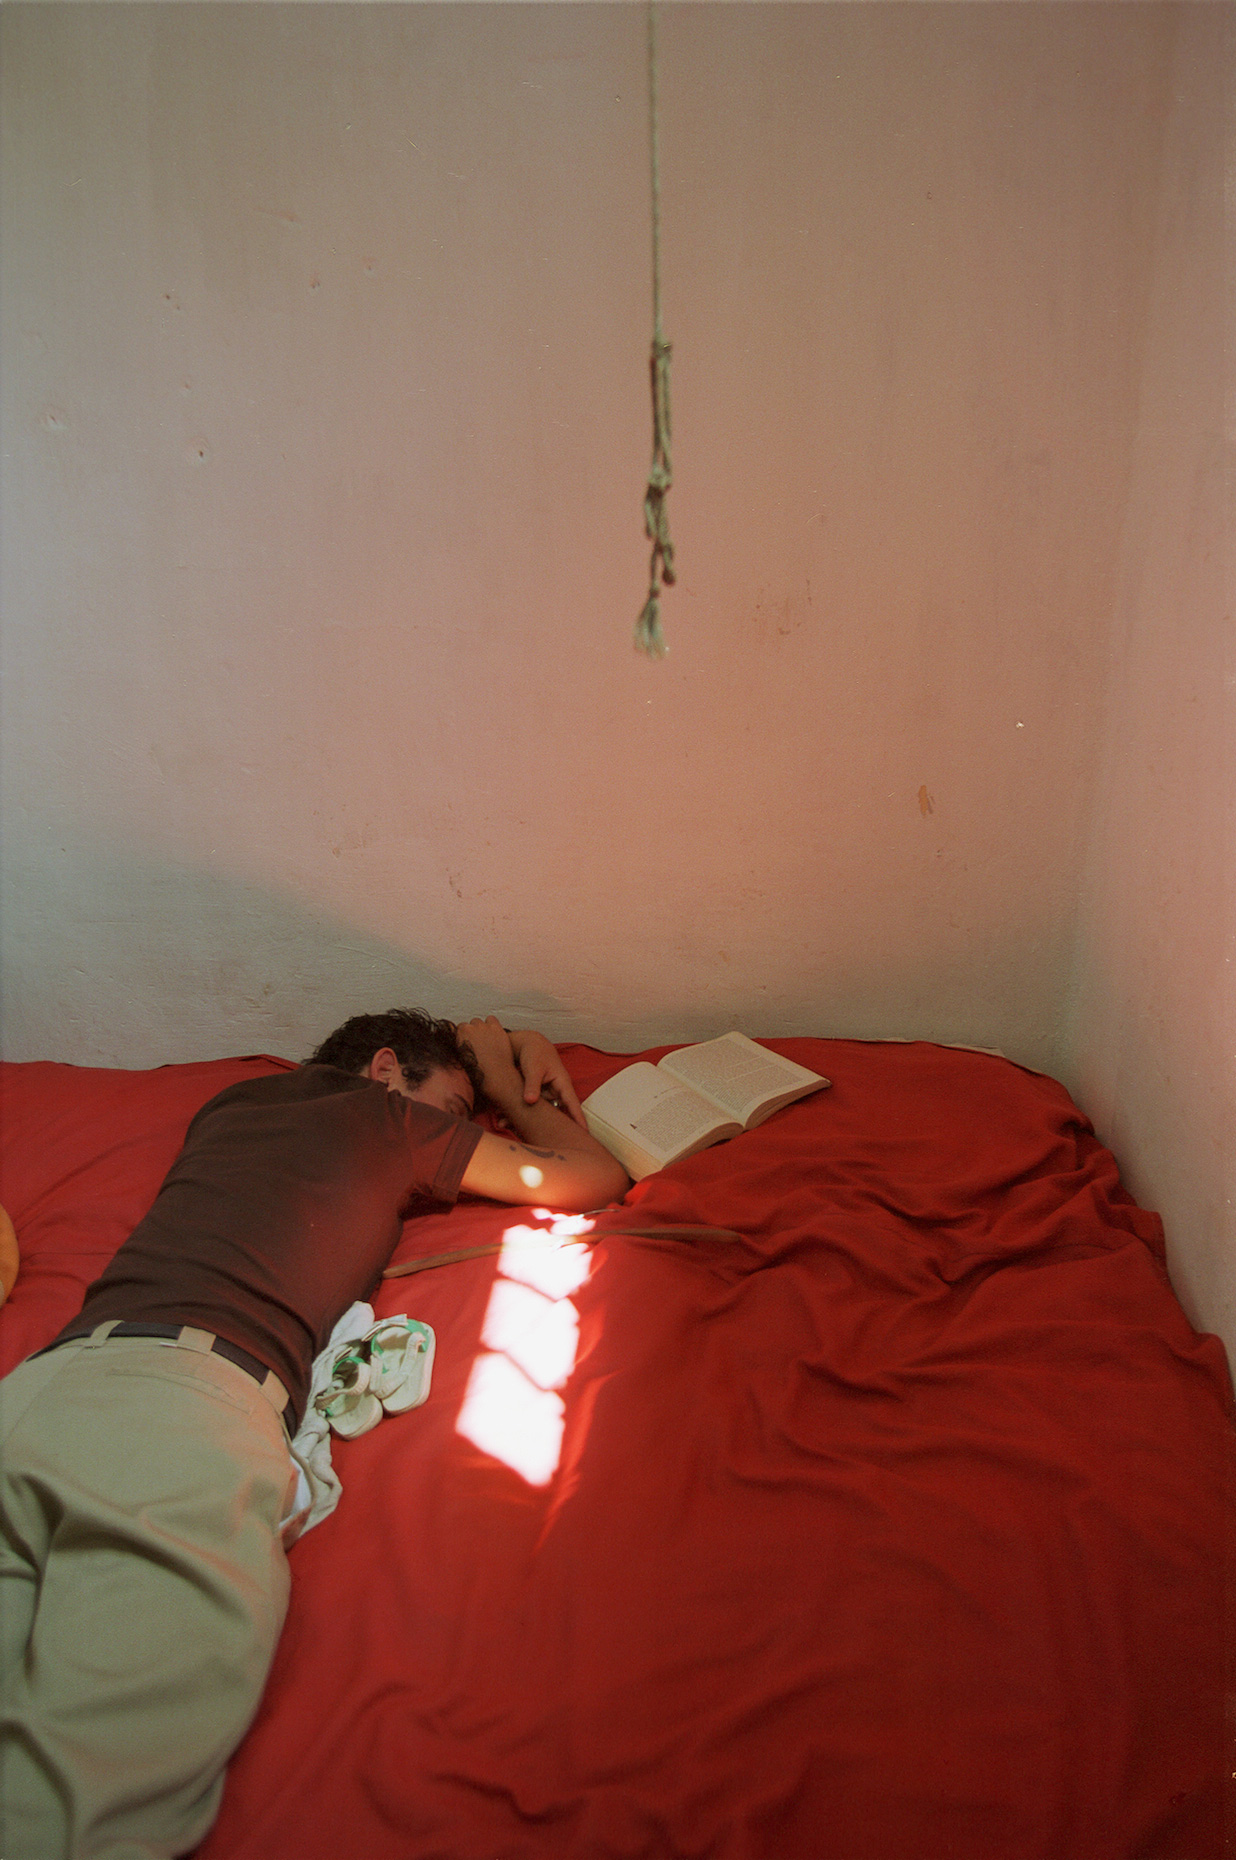 005-joel-asleep-red-spread.jpg